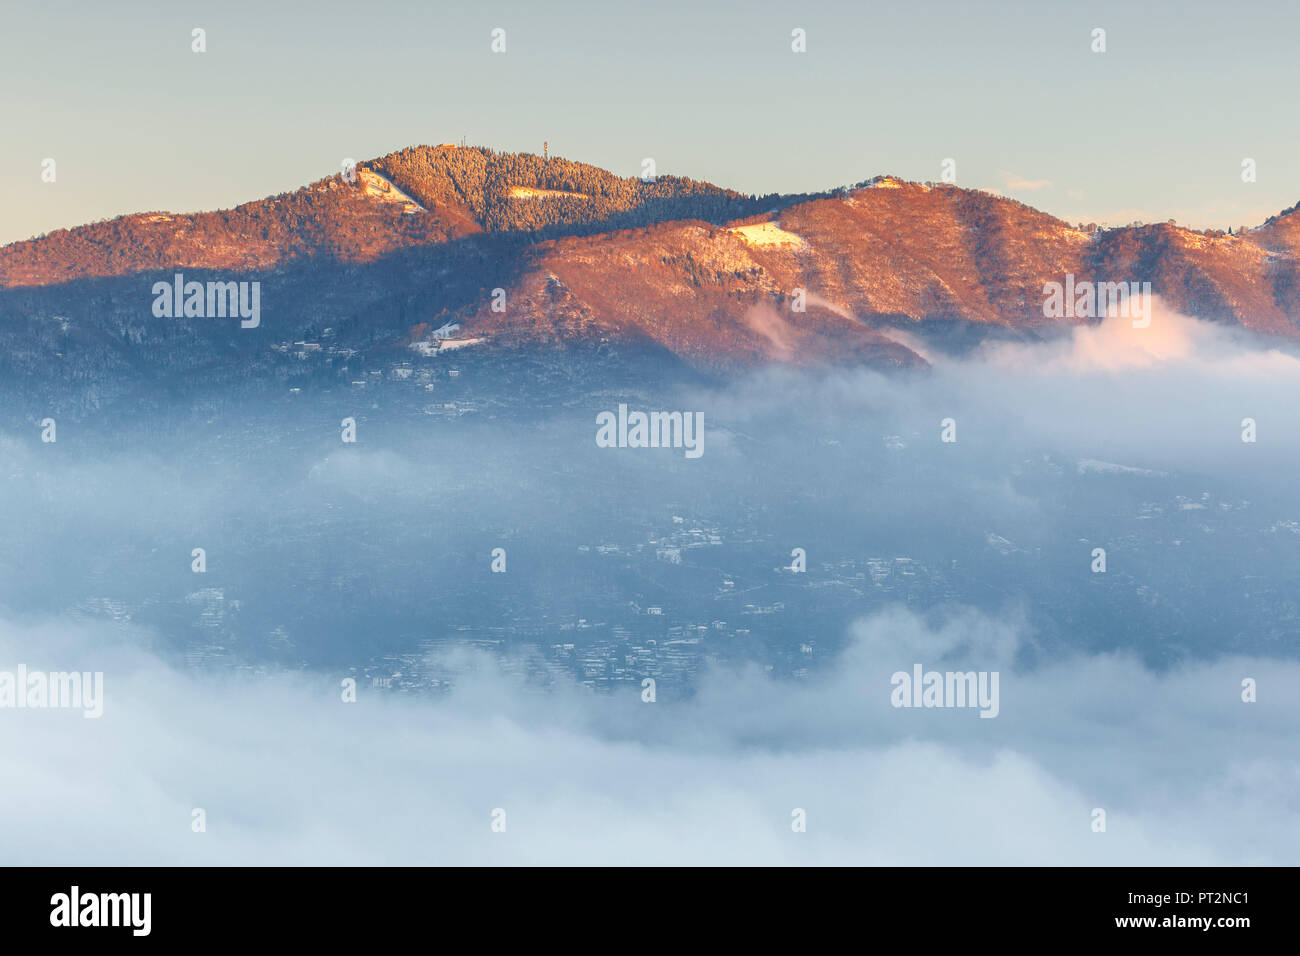 Bisbino mount rise up from a sea of clouds at sunrise, como province, Lombardy, Italy, Europe - Stock Image